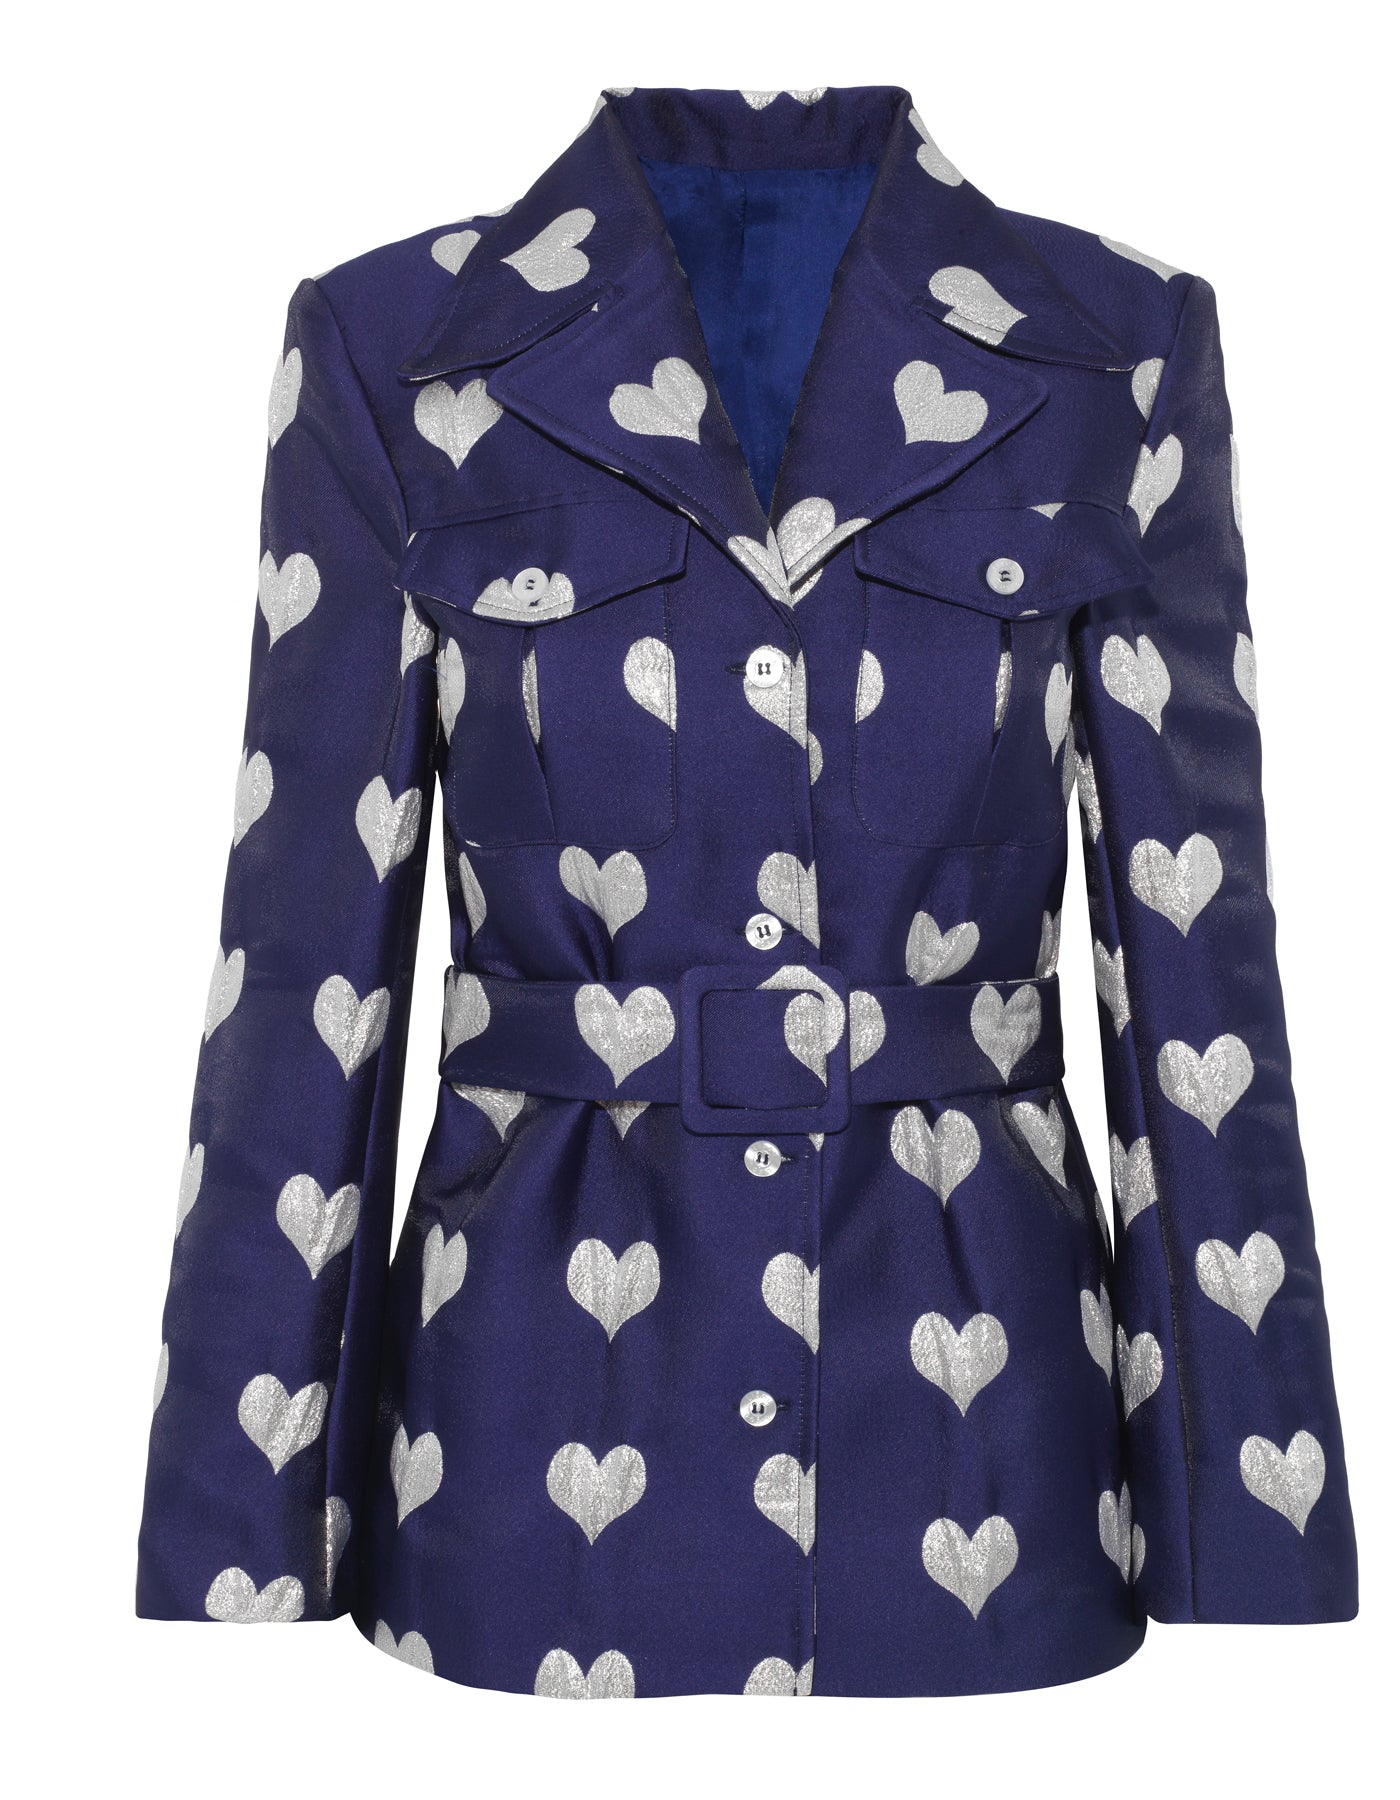 Lucille Metallic Blue Heart Jacquard Jacket